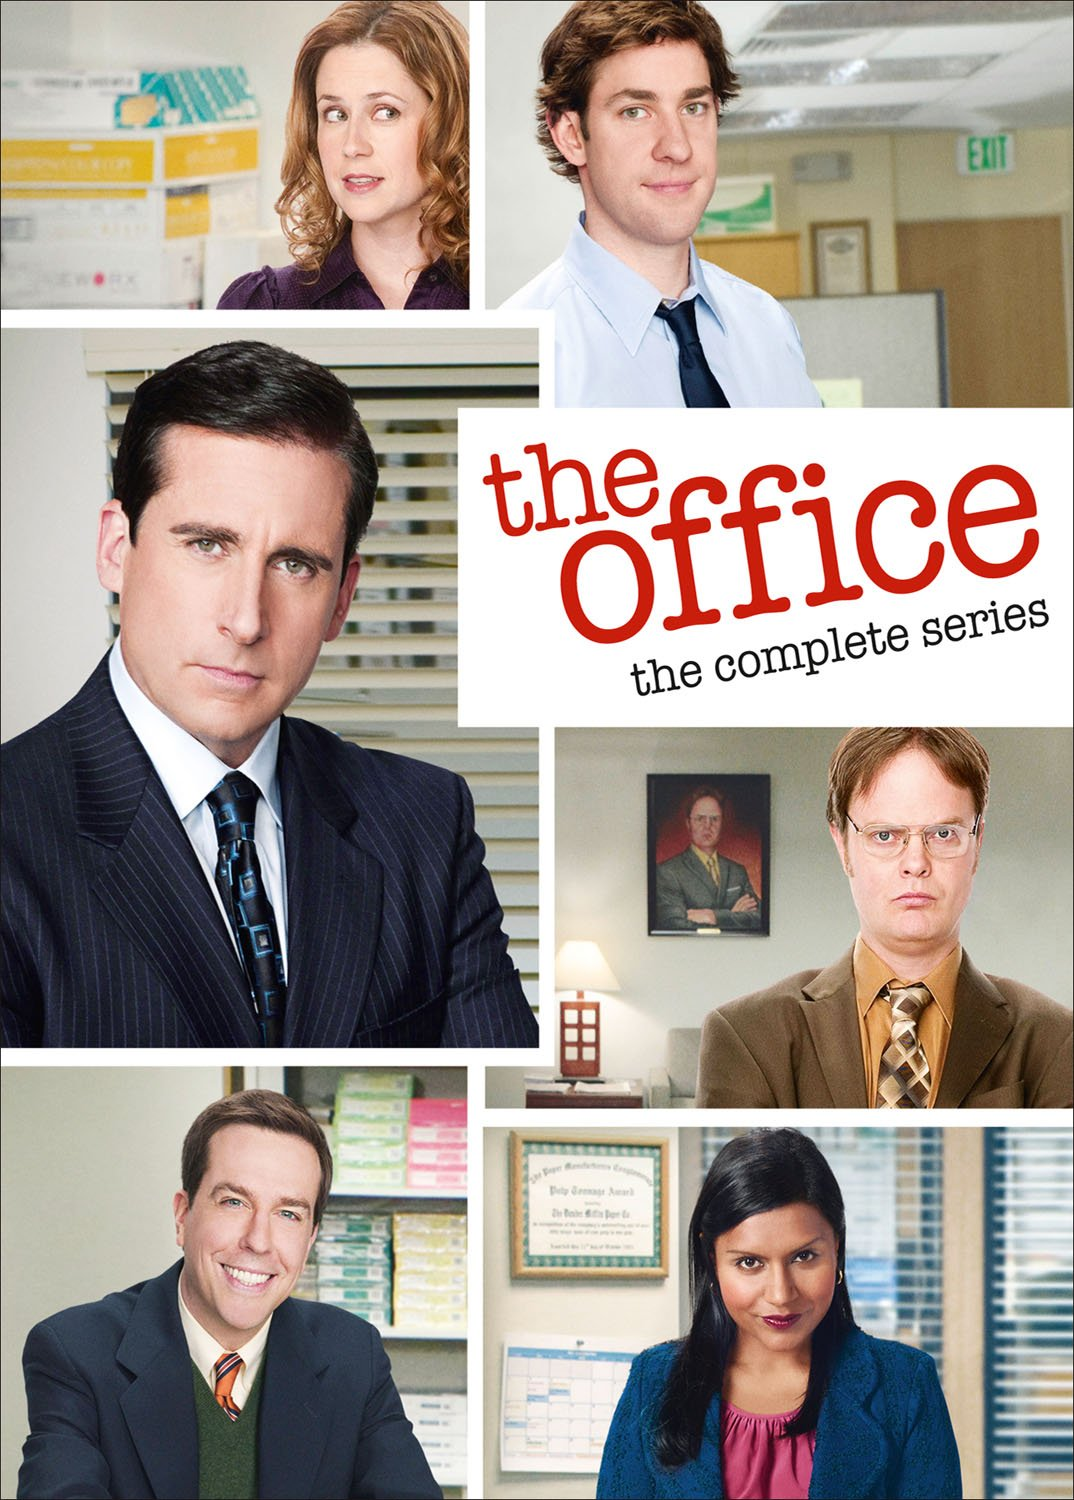 DVD : The Office: The Complete Series (Boxed Set, Repackaged, 38PC)